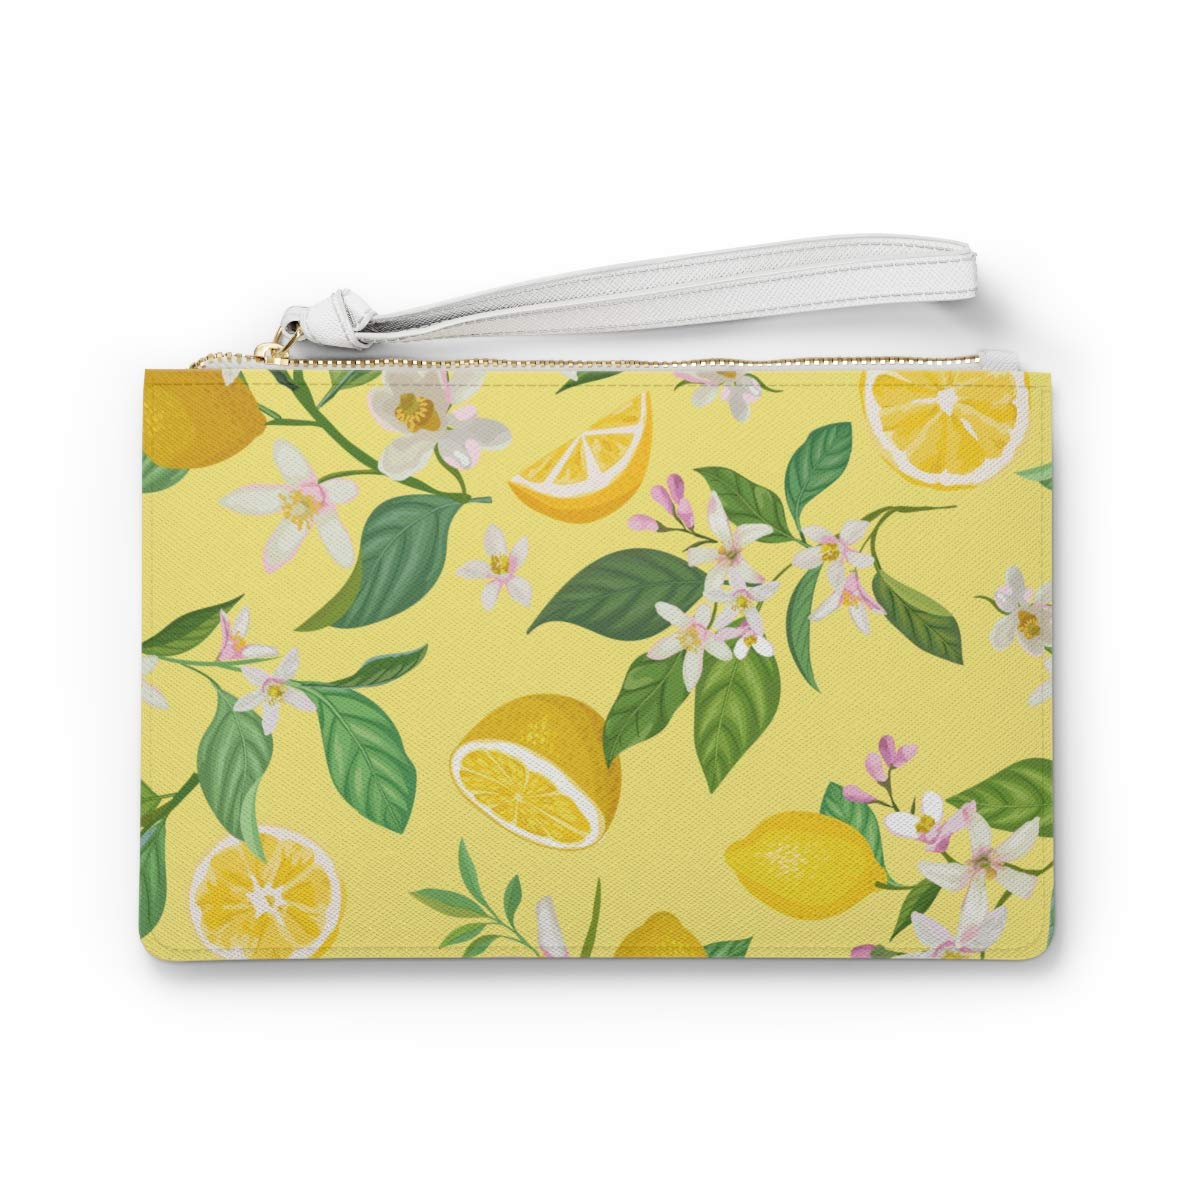 Lemon New color Lover Directly managed store - Bag Clutch